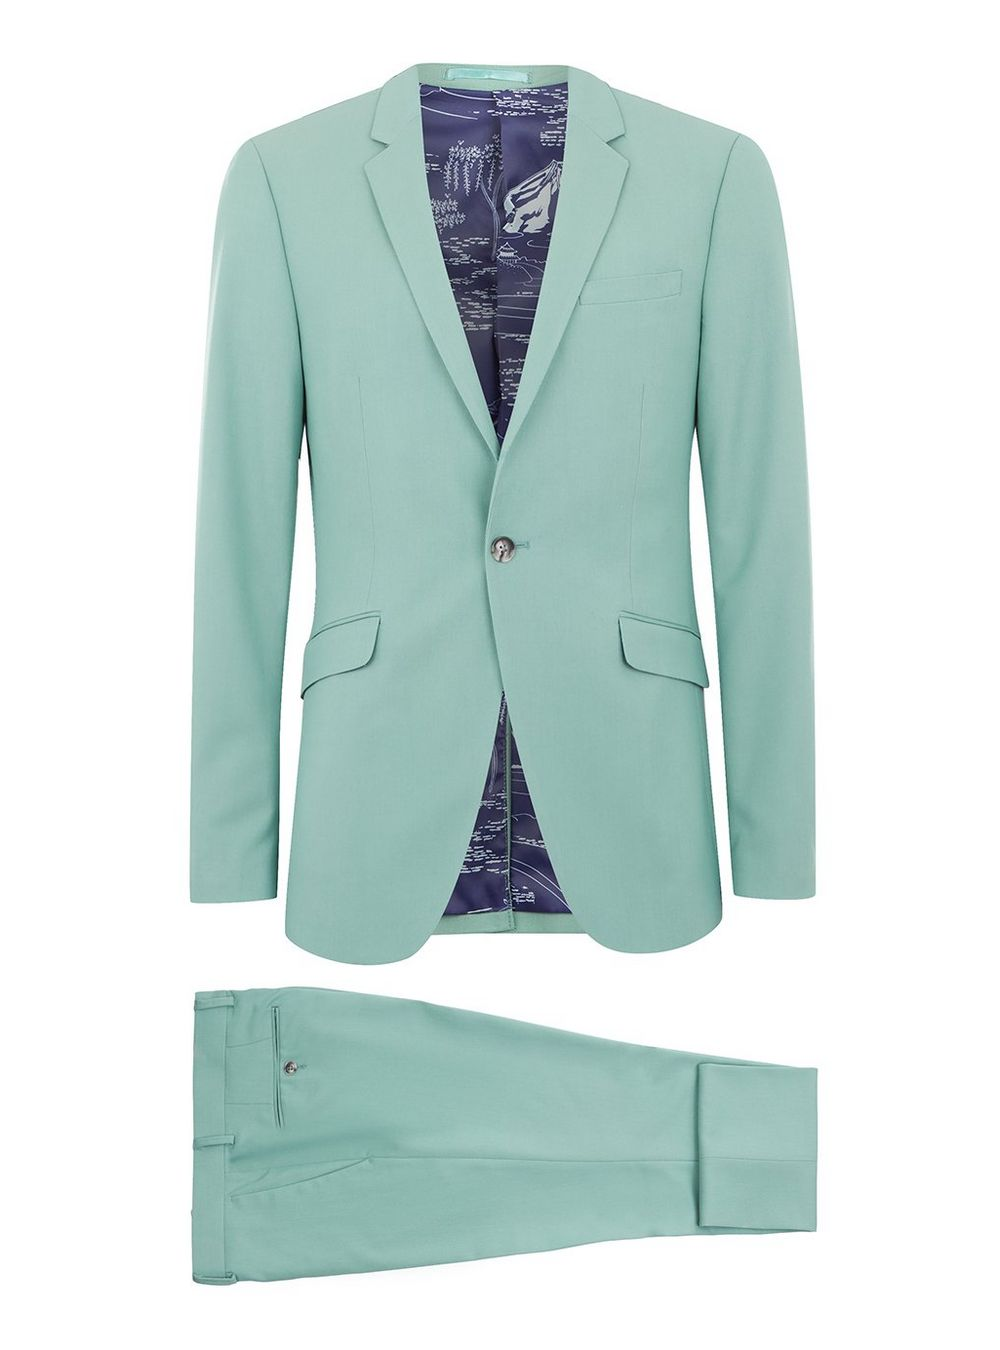 Topman mint green suit - £130 - Because dusty rose pink is so last season